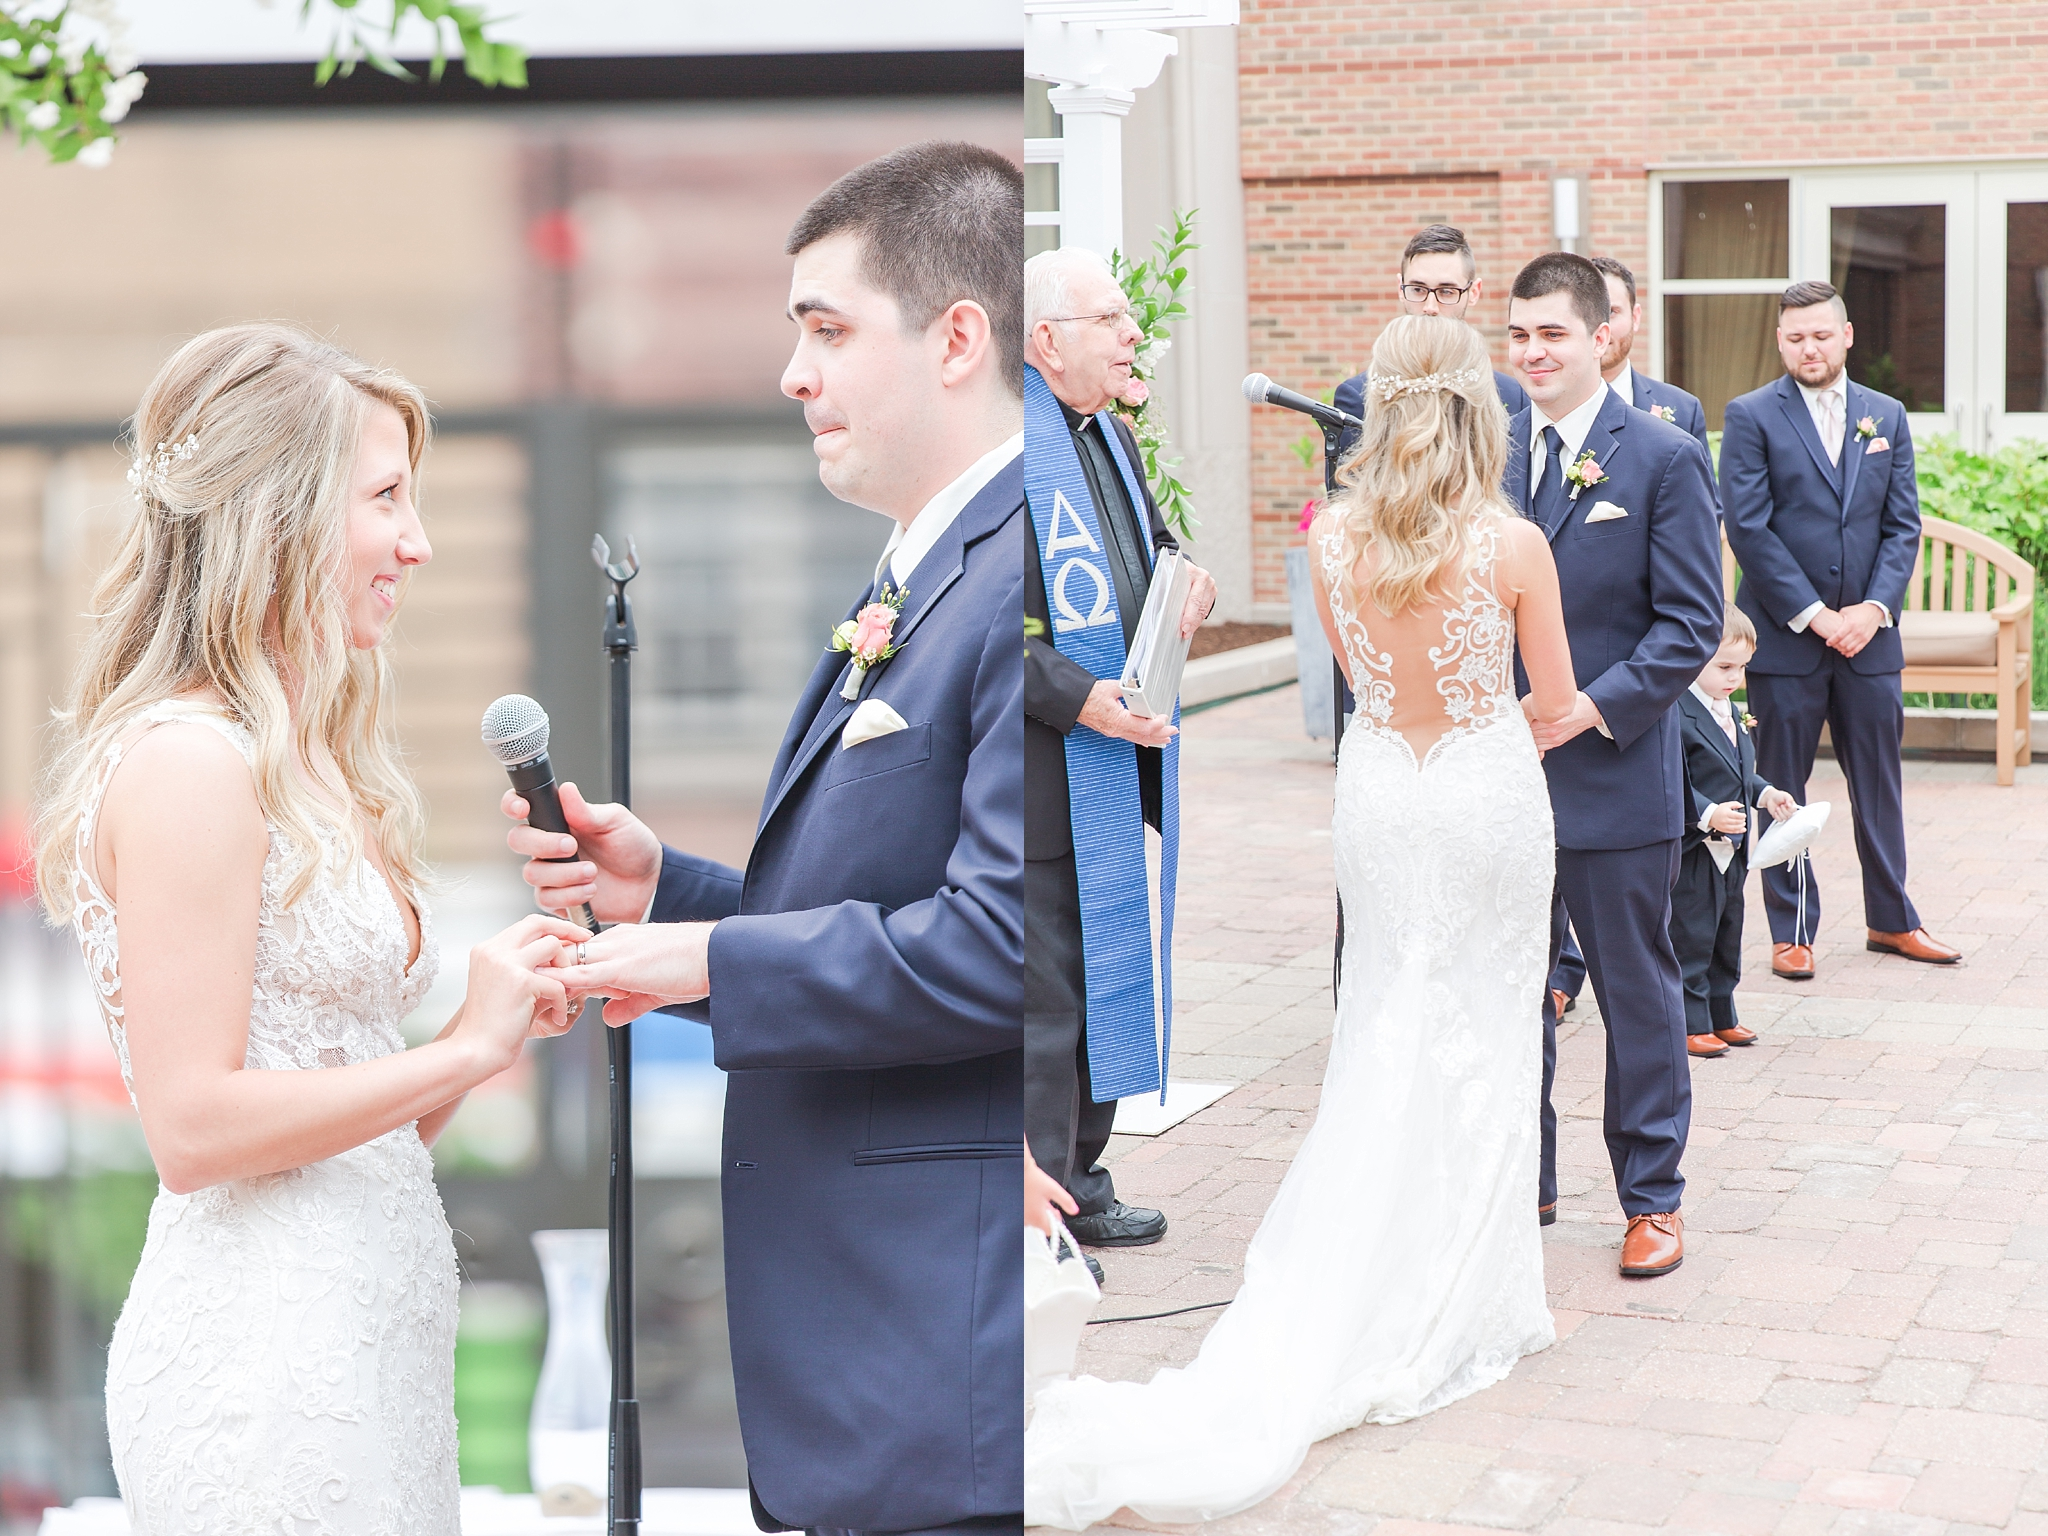 candid-romantic-wedding-photos-at-the-h-hotel-in-midland-michigan-by-courtney-carolyn-photography_0070.jpg